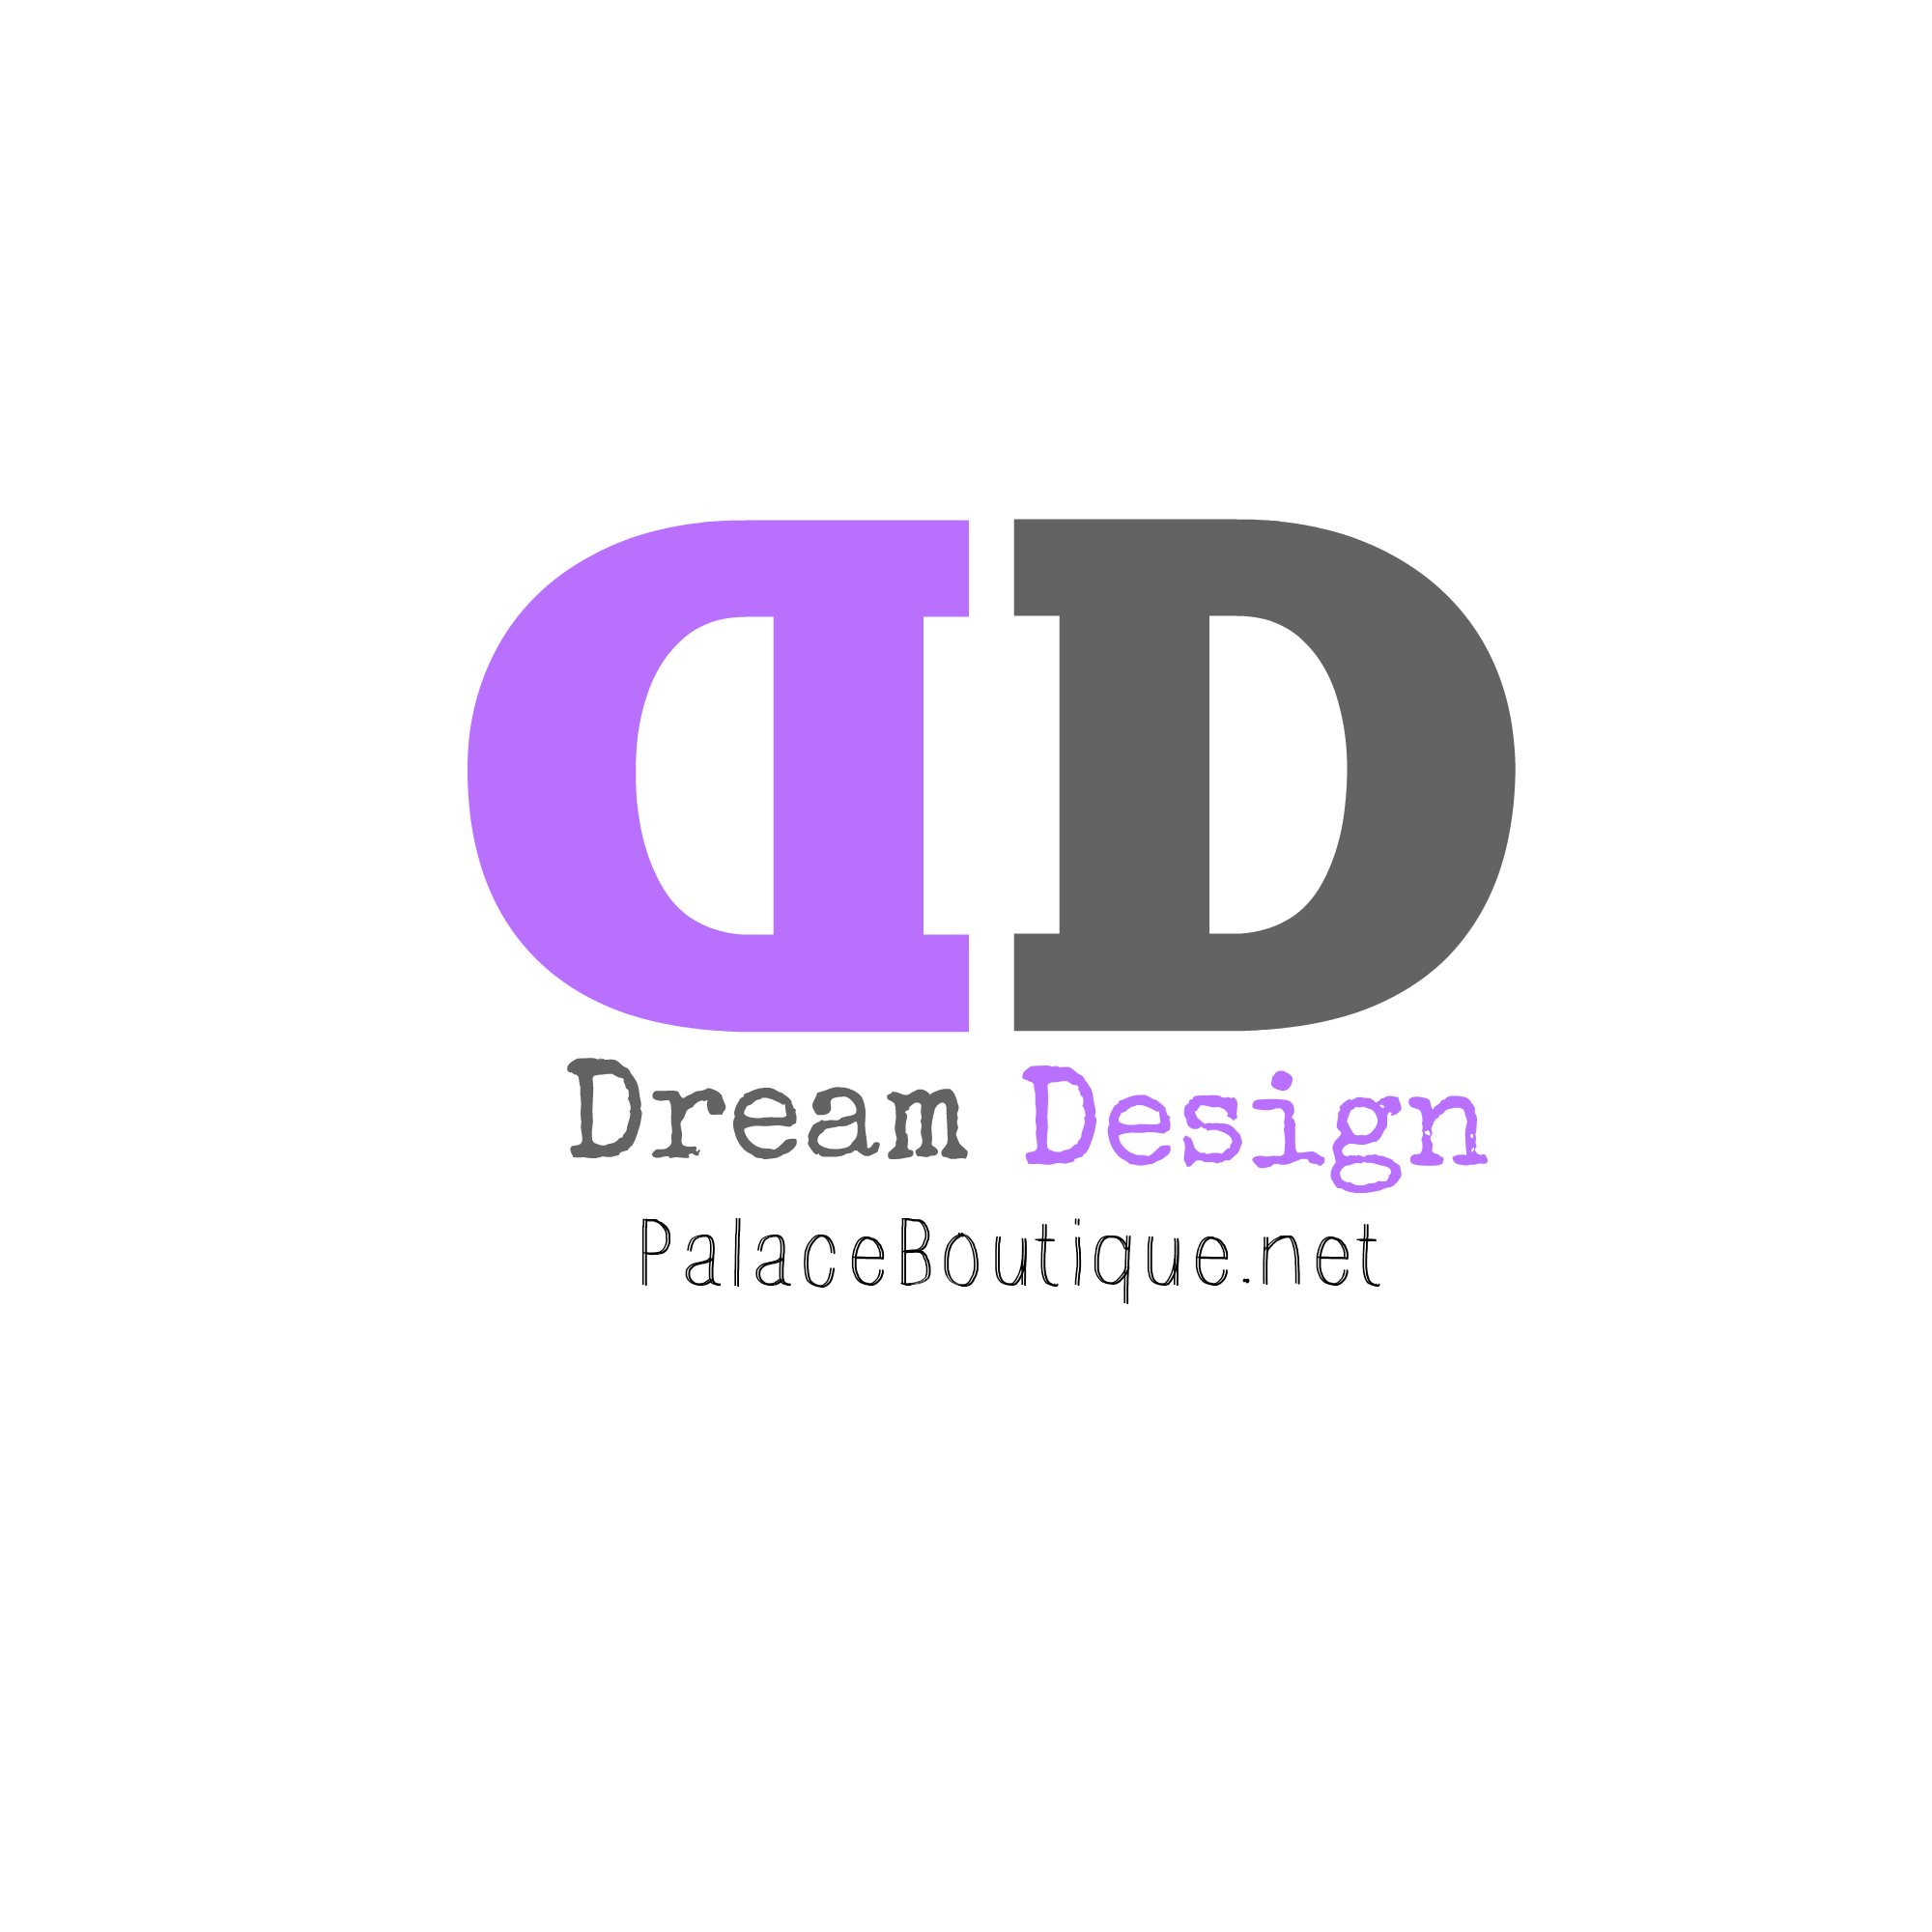 Dream Design